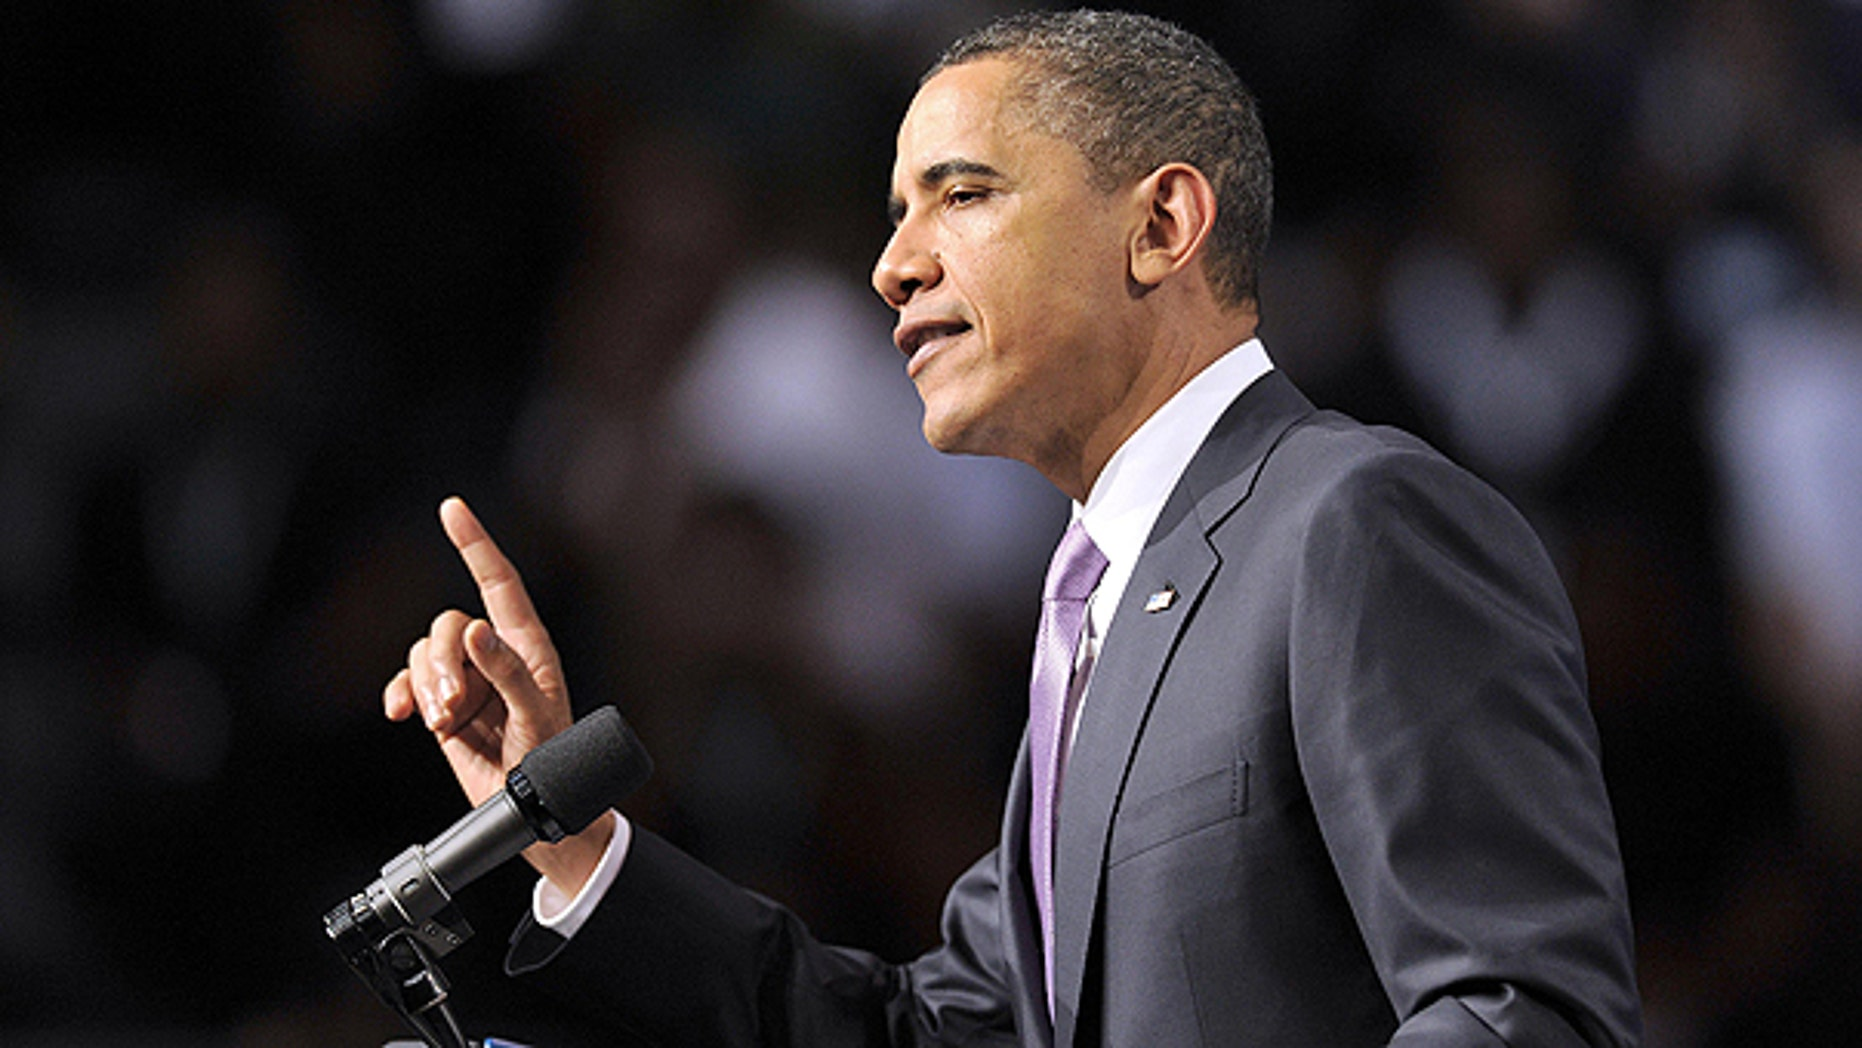 March 4: President Obama gestures while speaking at Miami Central Senior High School in Miami.